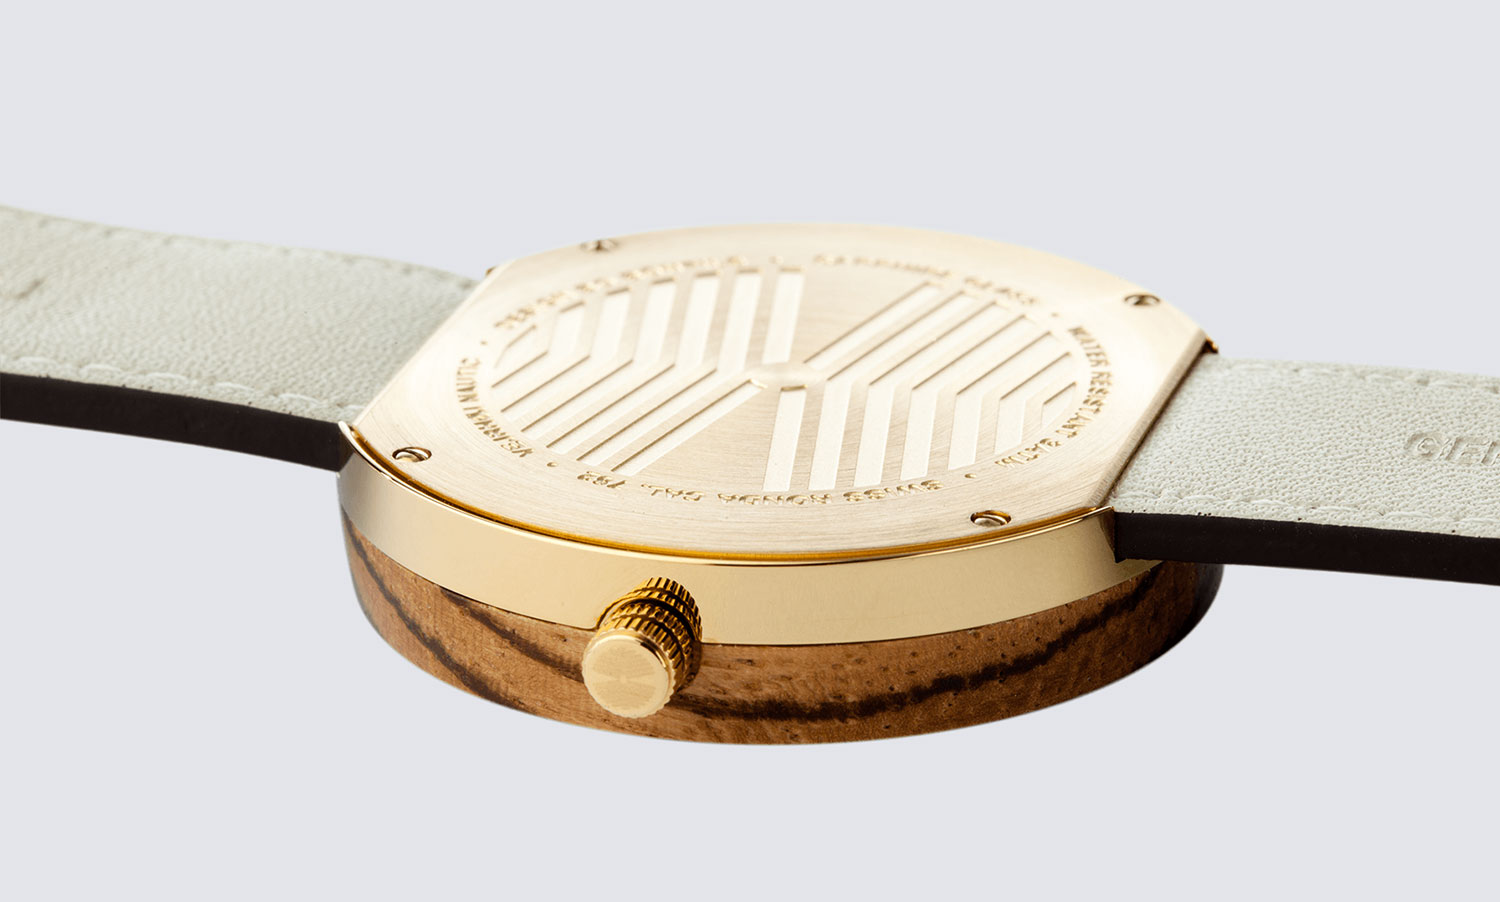 wooden-watch-zebrawood-gold-stainless-steel-NAUTIC-62-NORTH-3